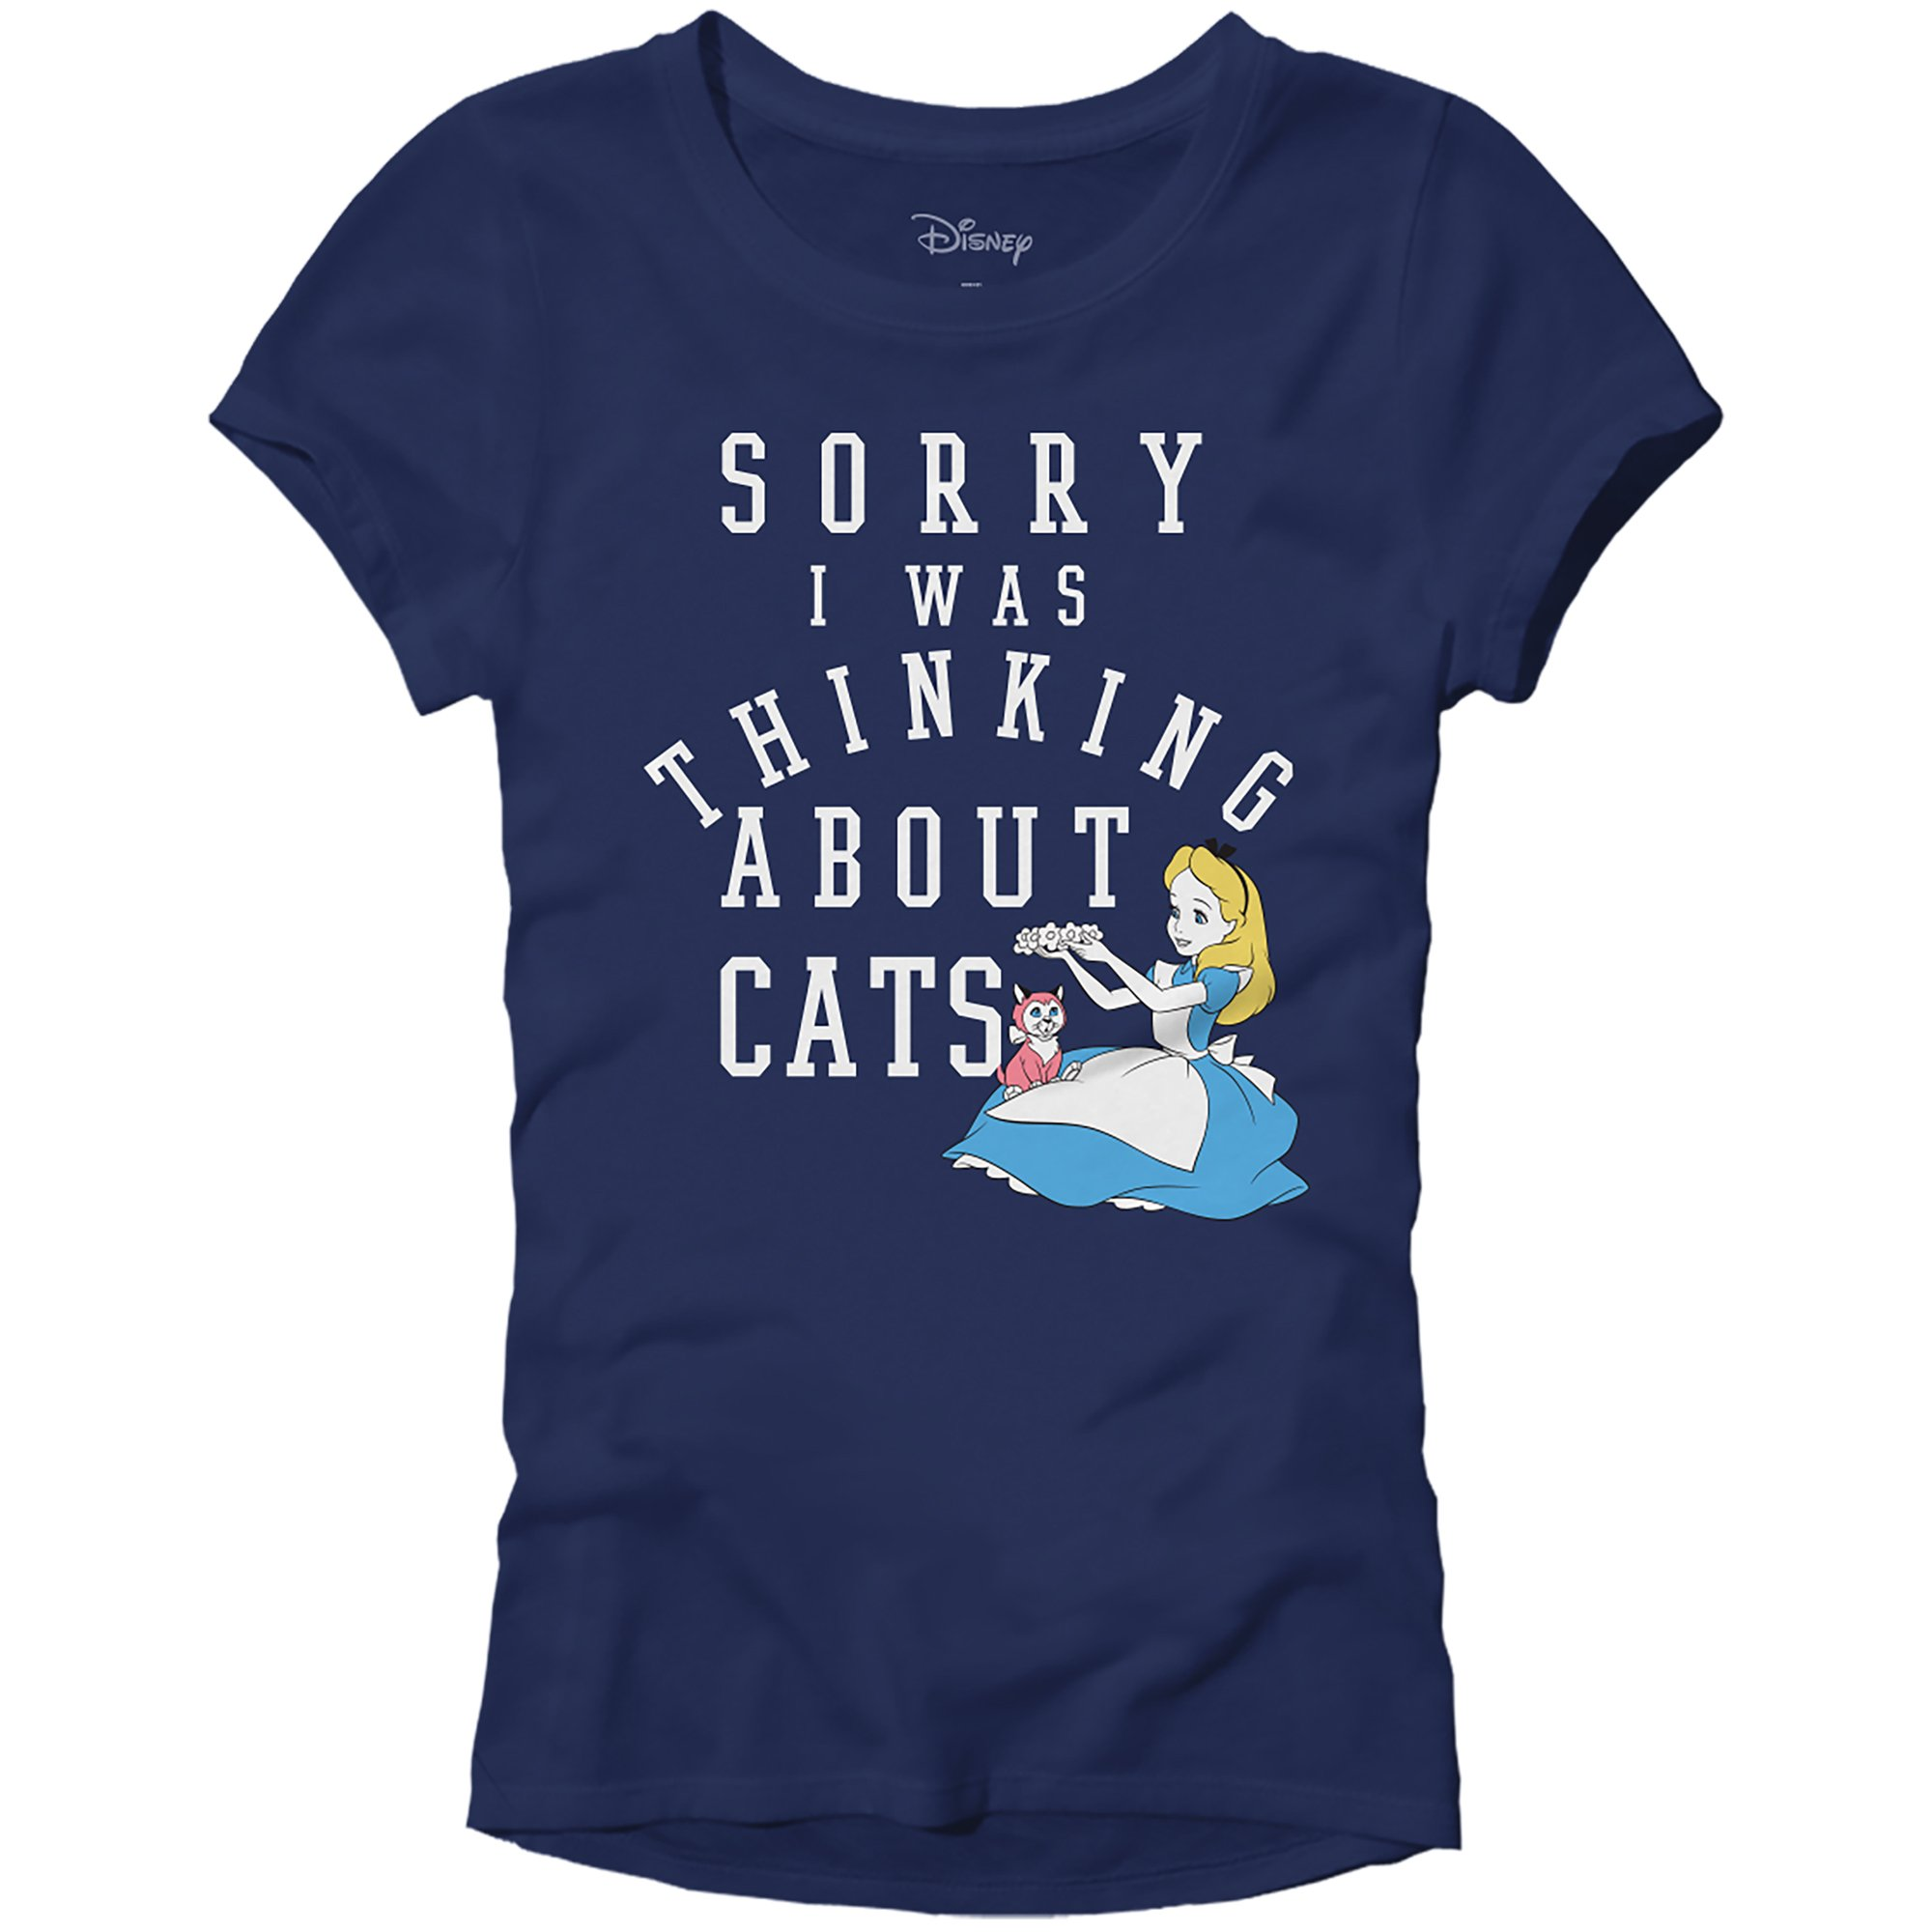 Disney Alice in Wonderland Juniors Thinking About Cats T-Shirt (Small, Navy)